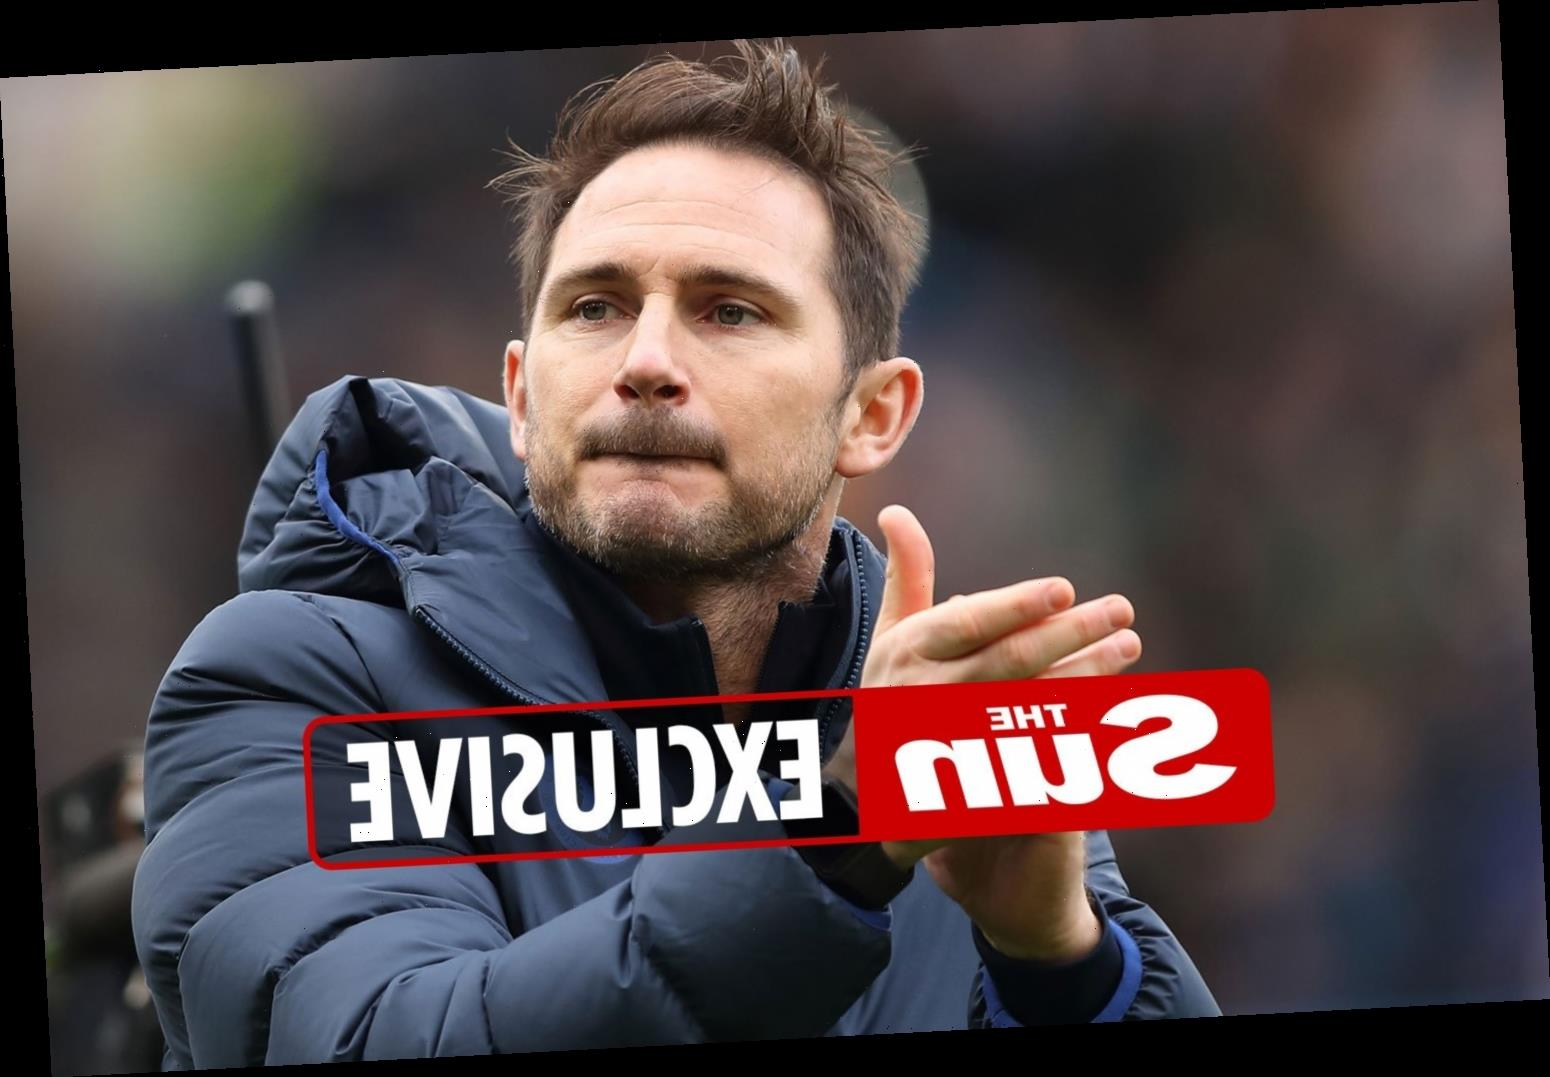 Frank Lampard was driving to Chelsea training when he was summoned to Stamford Bridge to be sacked in 30-minute meeting